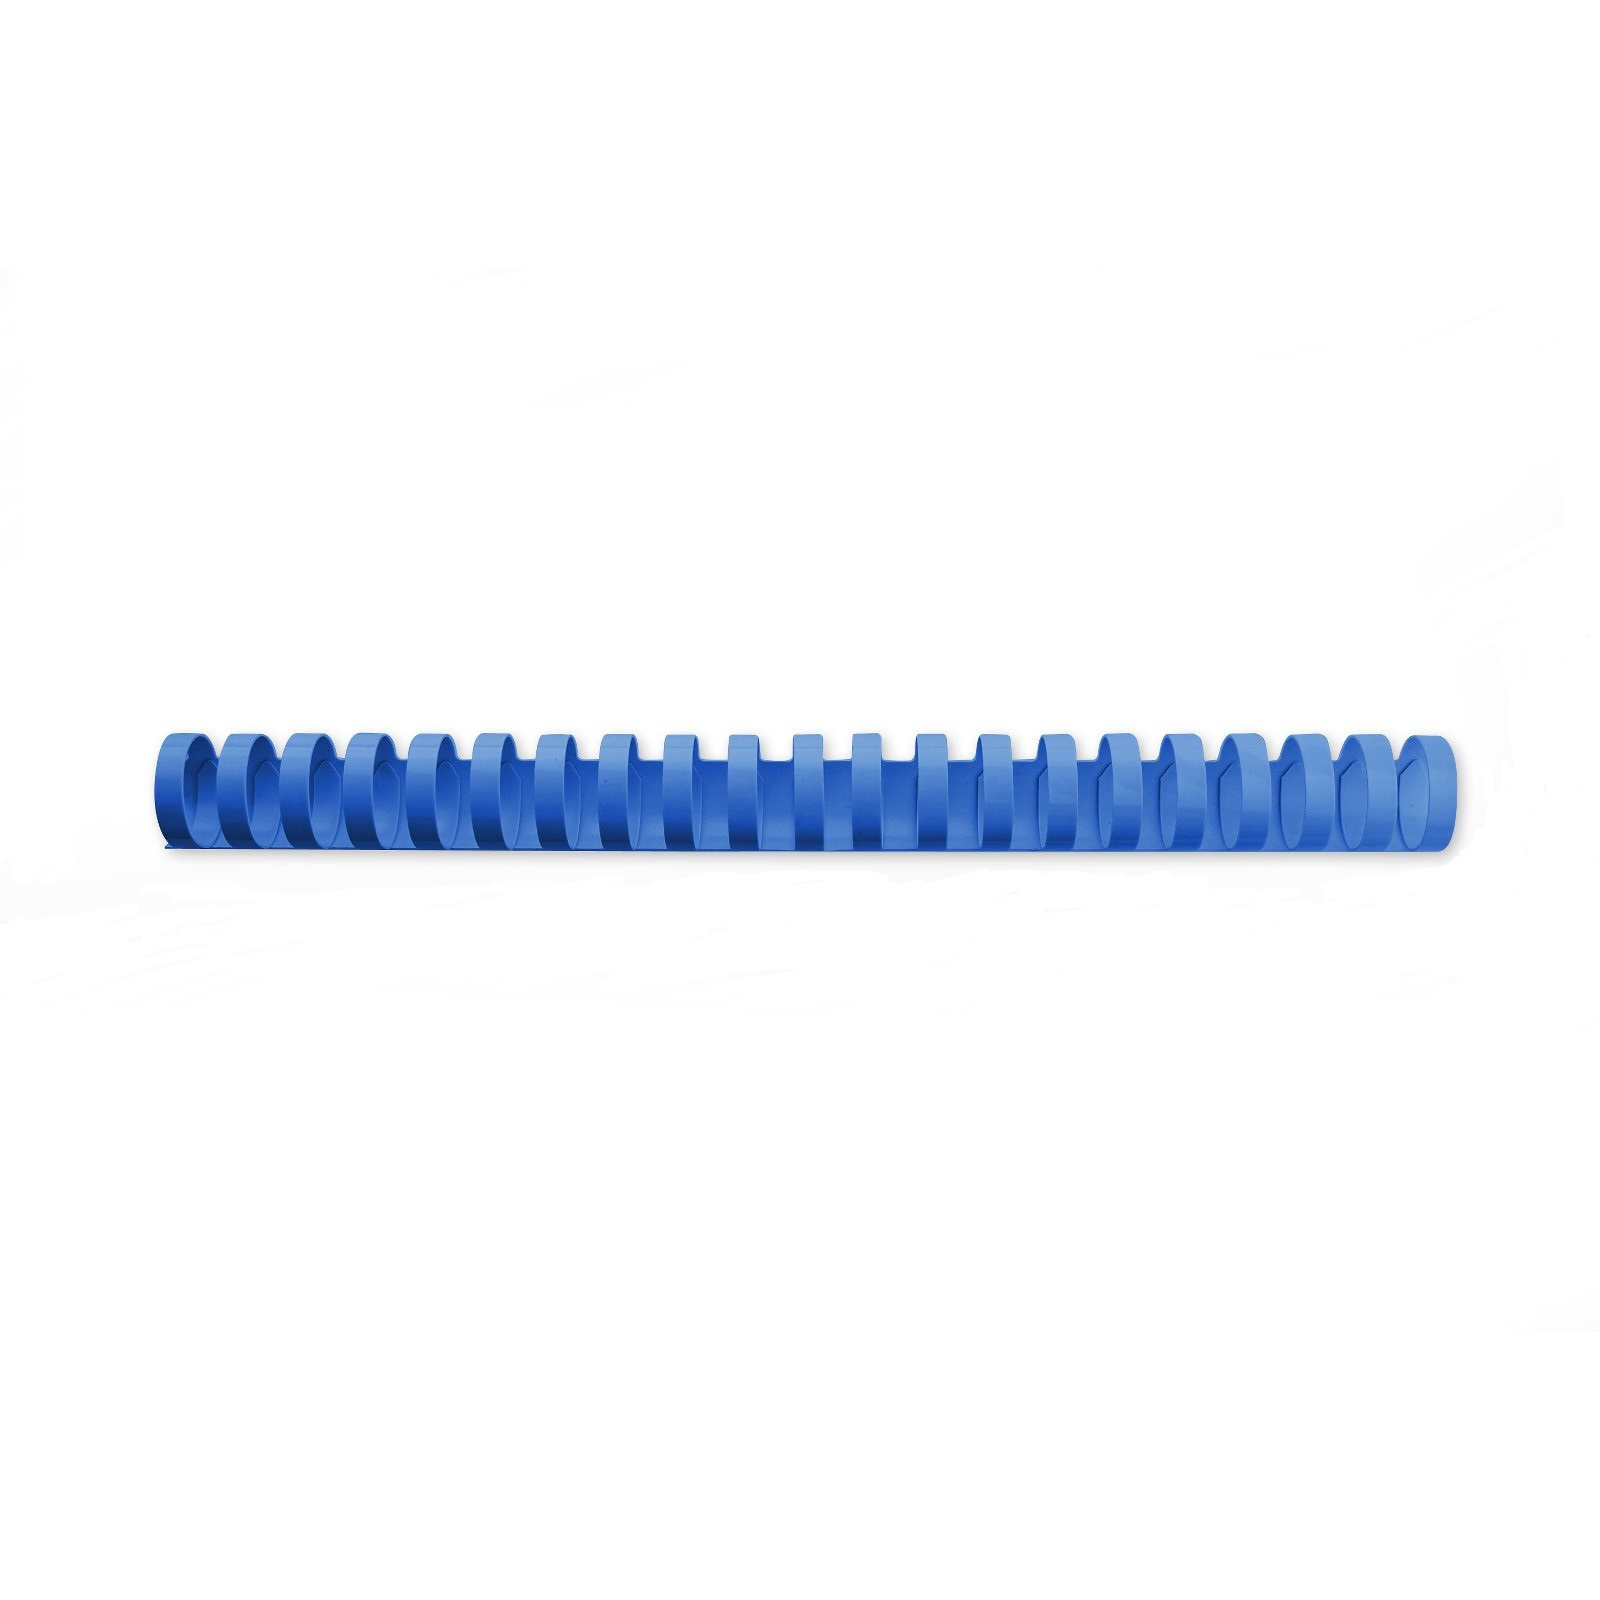 GBC Binding Combs 21 Ring A4 16mm Blue 4028620 (PK100)